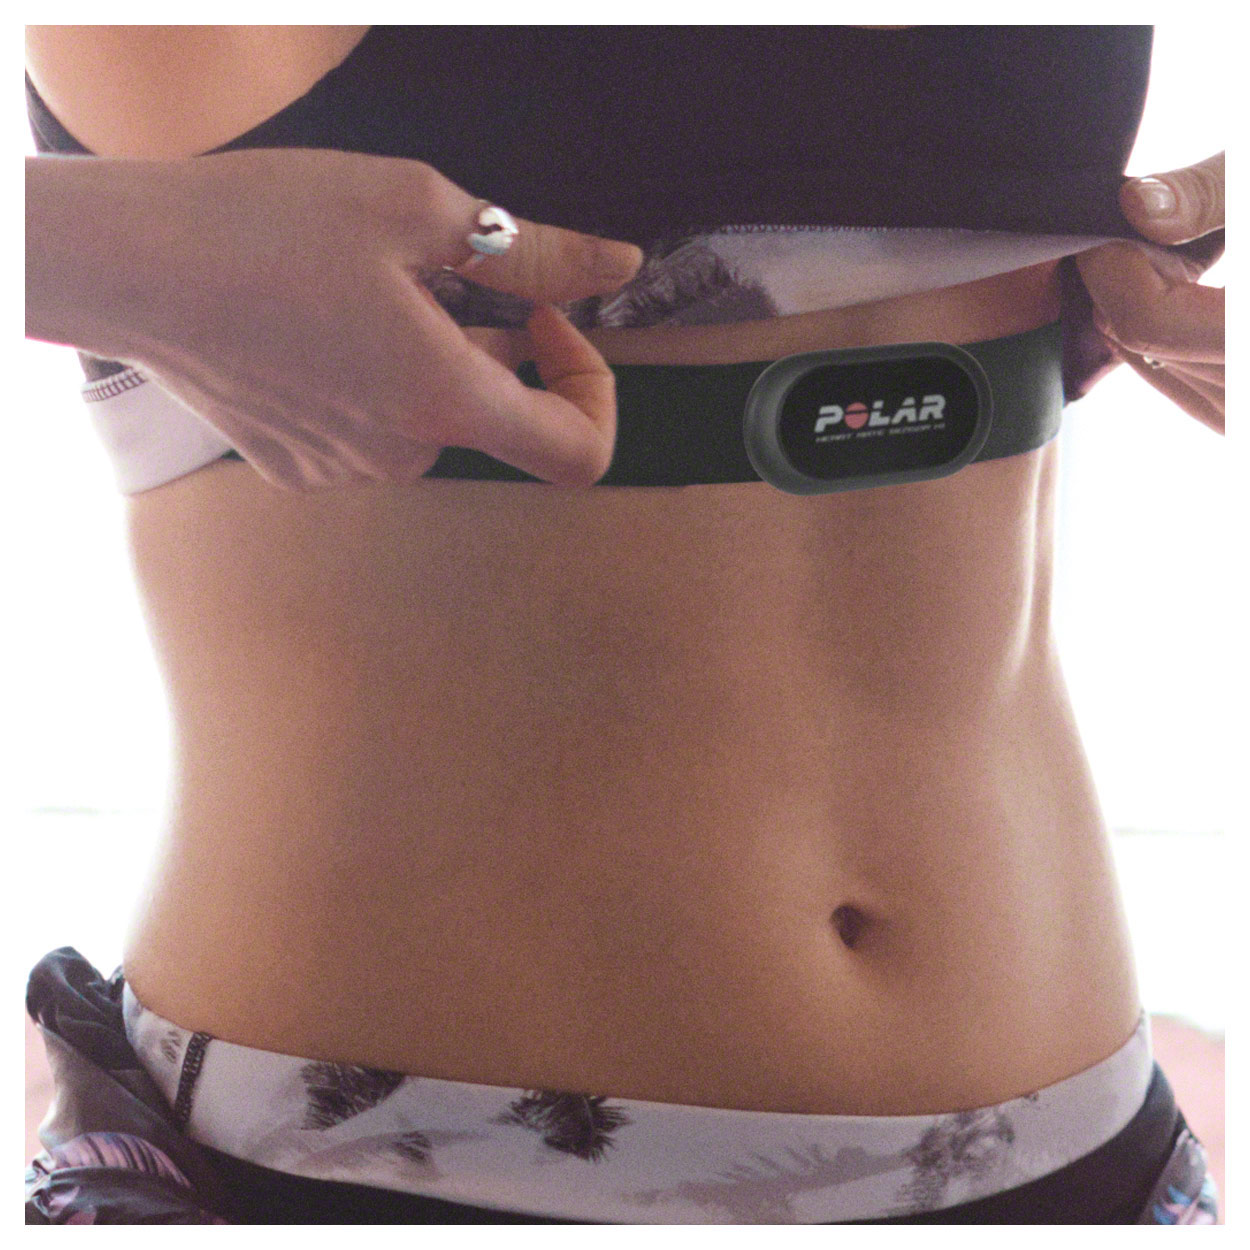 Fitnessgeräte: POLAR Heart Rate Sensor WearLink H1, Gr. XS-S, codiert